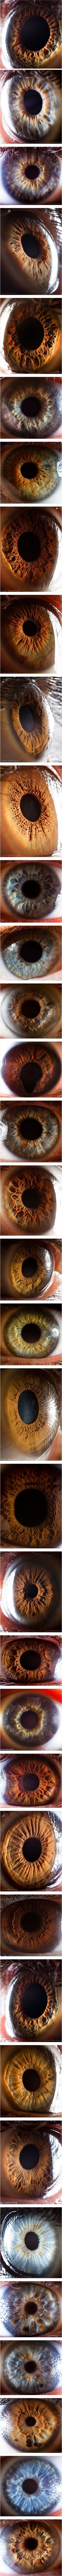 Suren Manvelyan - macro photography of human eyes